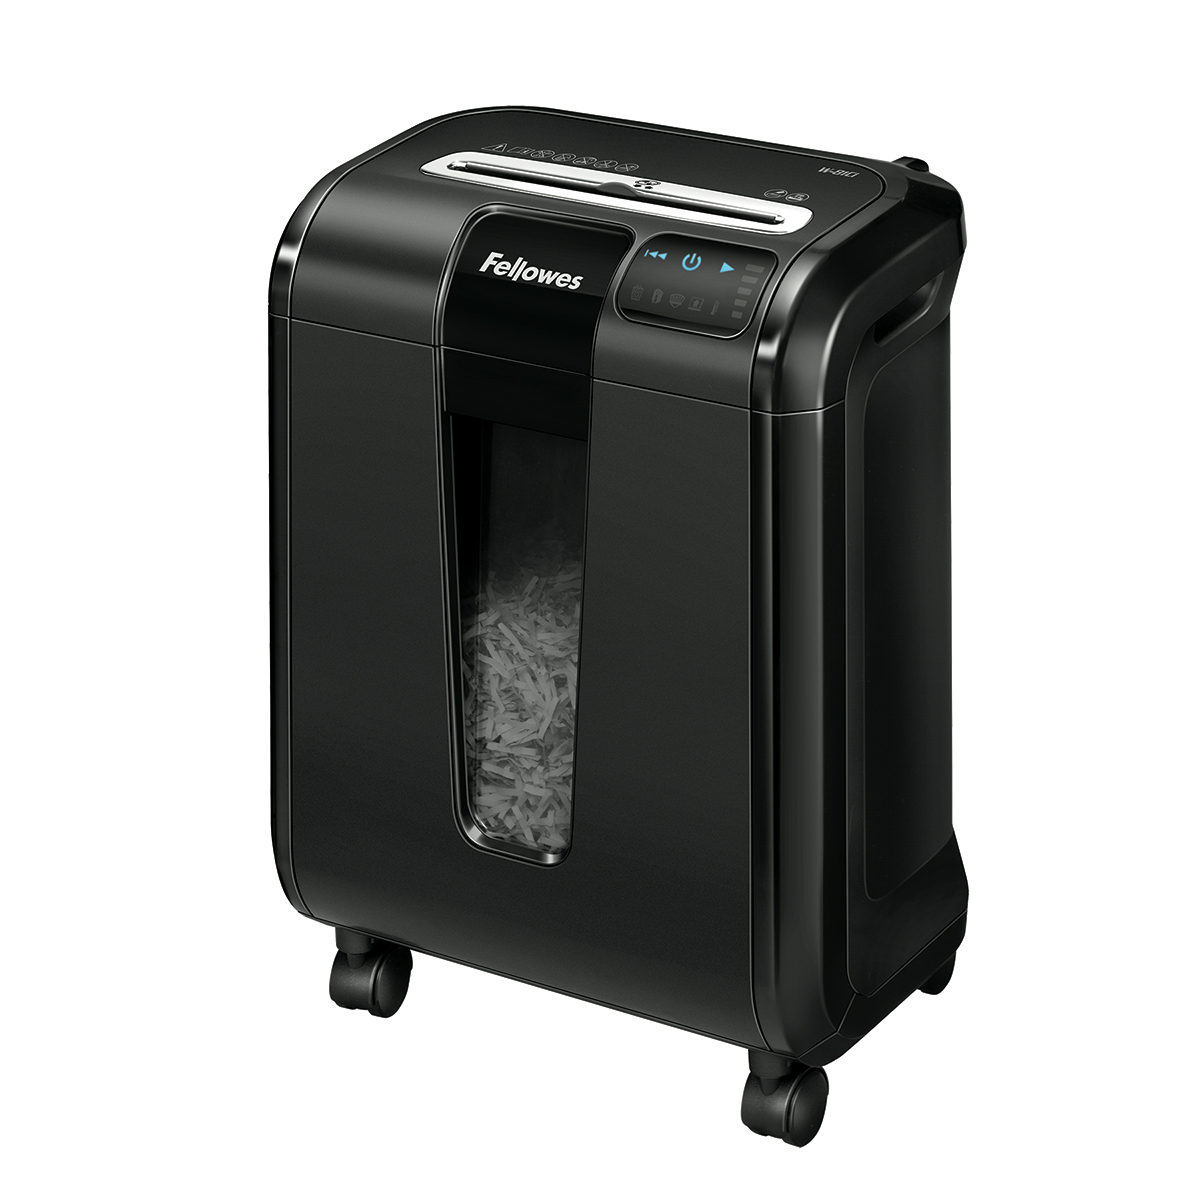 Fellowes W-81C Cross Cut Shredder